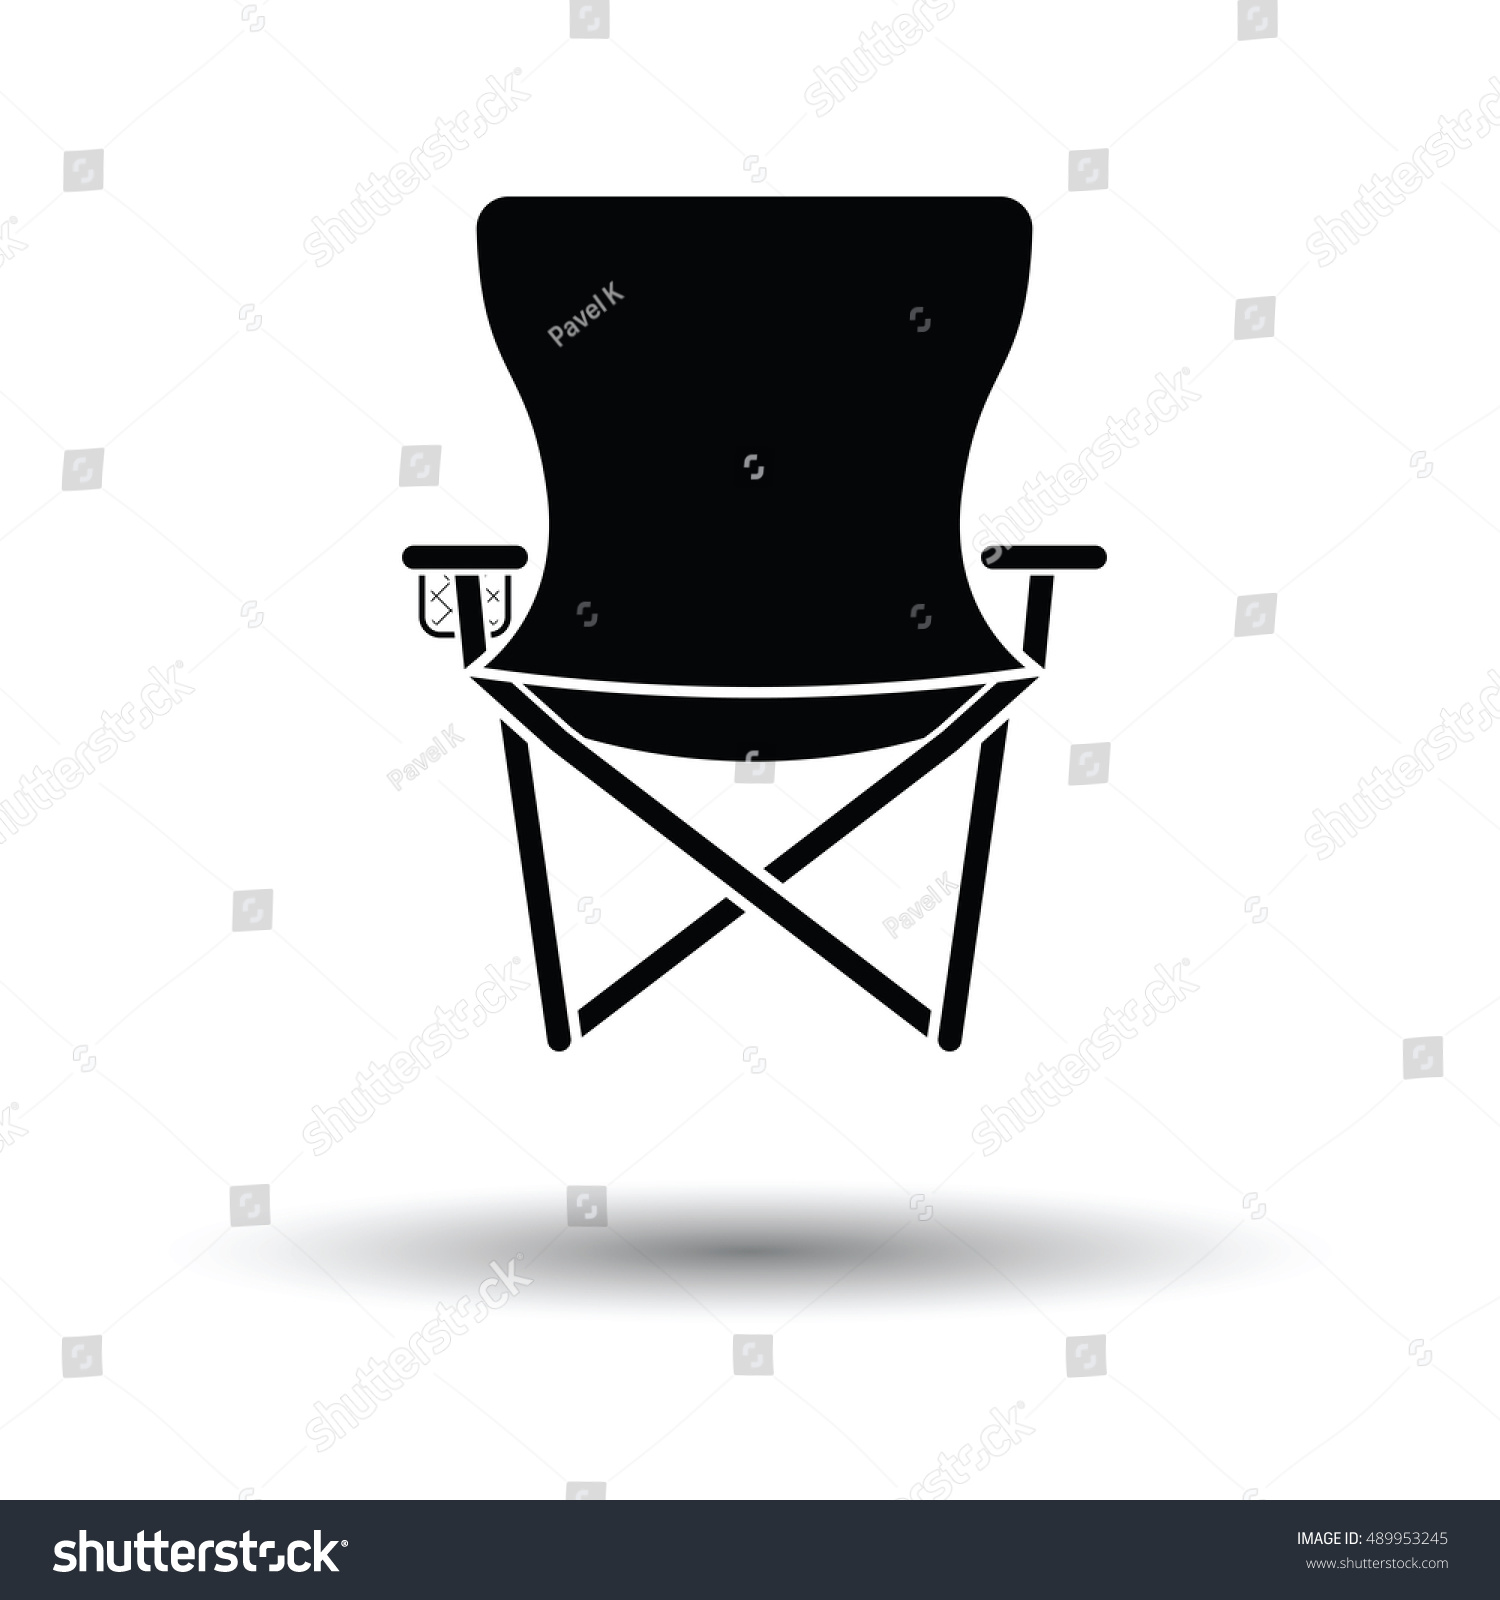 Icon Fishing Folding Chair White Background Stock Vector